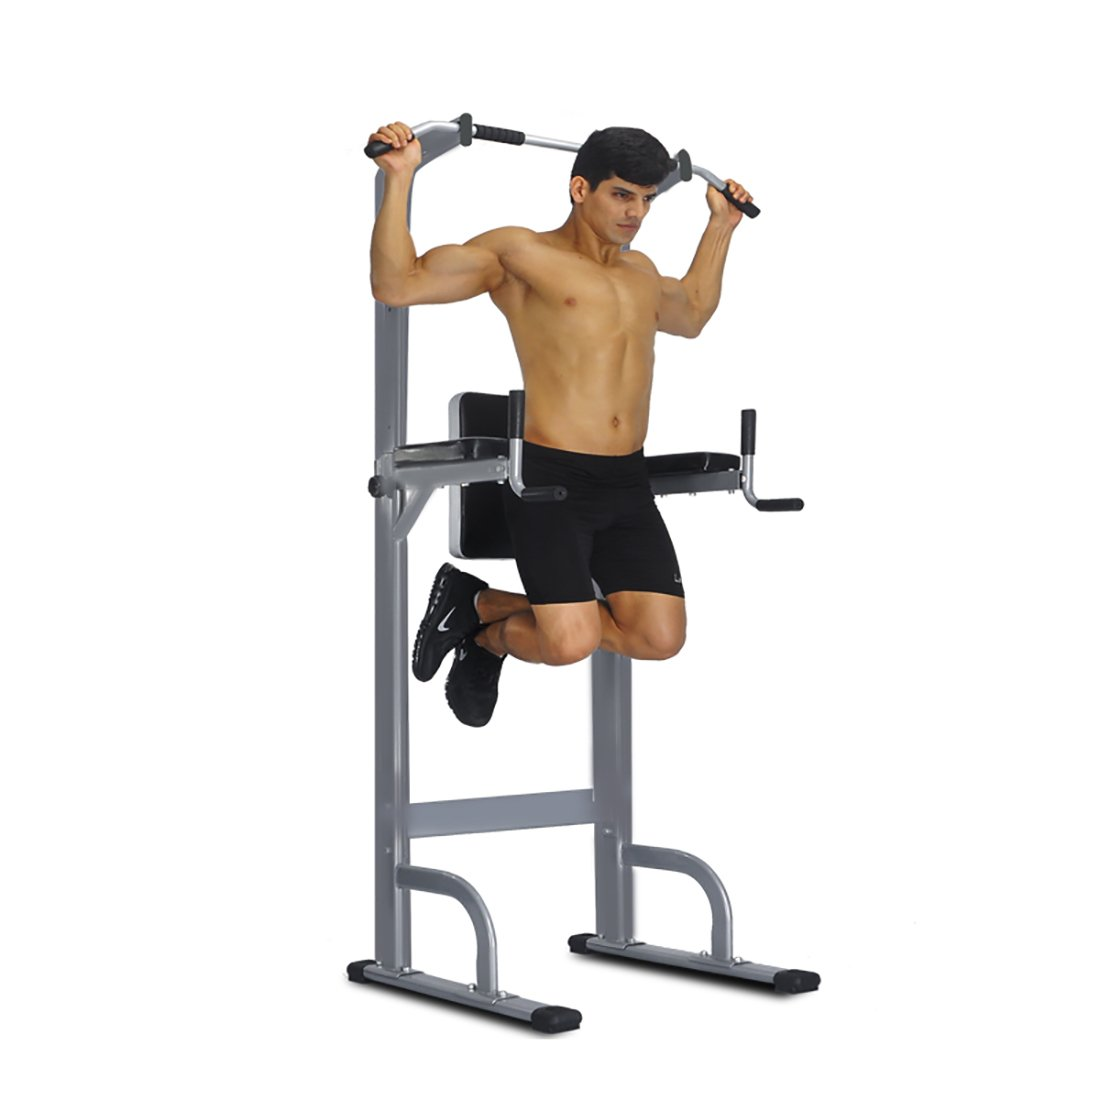 Power Tower Rack - Full Body Strength Pull Up Station Adjustable Power Tower Standing Tower,Gym Sports Workout Fitness Equipment 550 Lbs Pull Up Tower by FEIERDUN